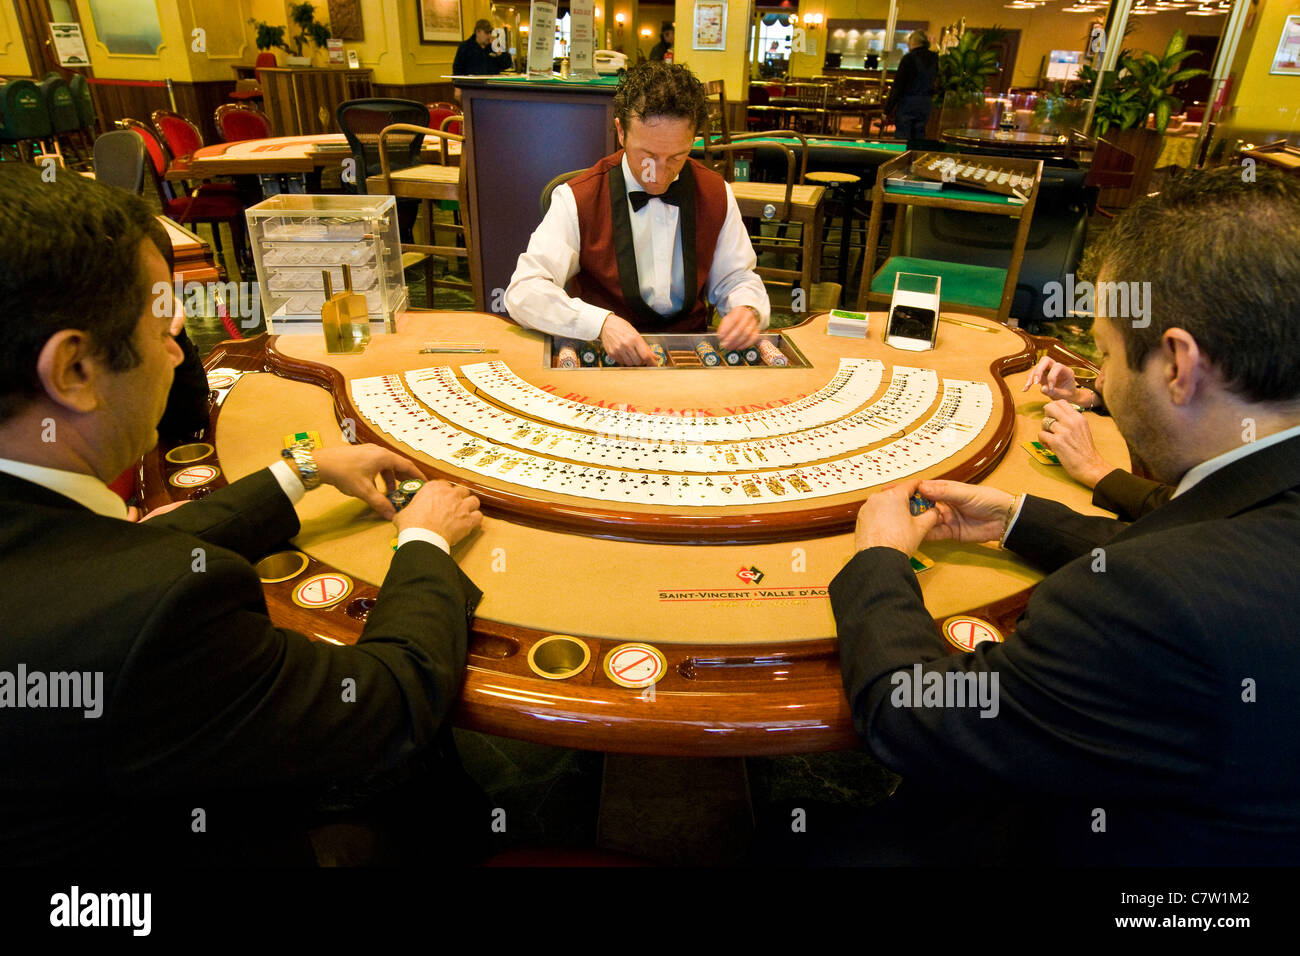 Table position in texas holdem